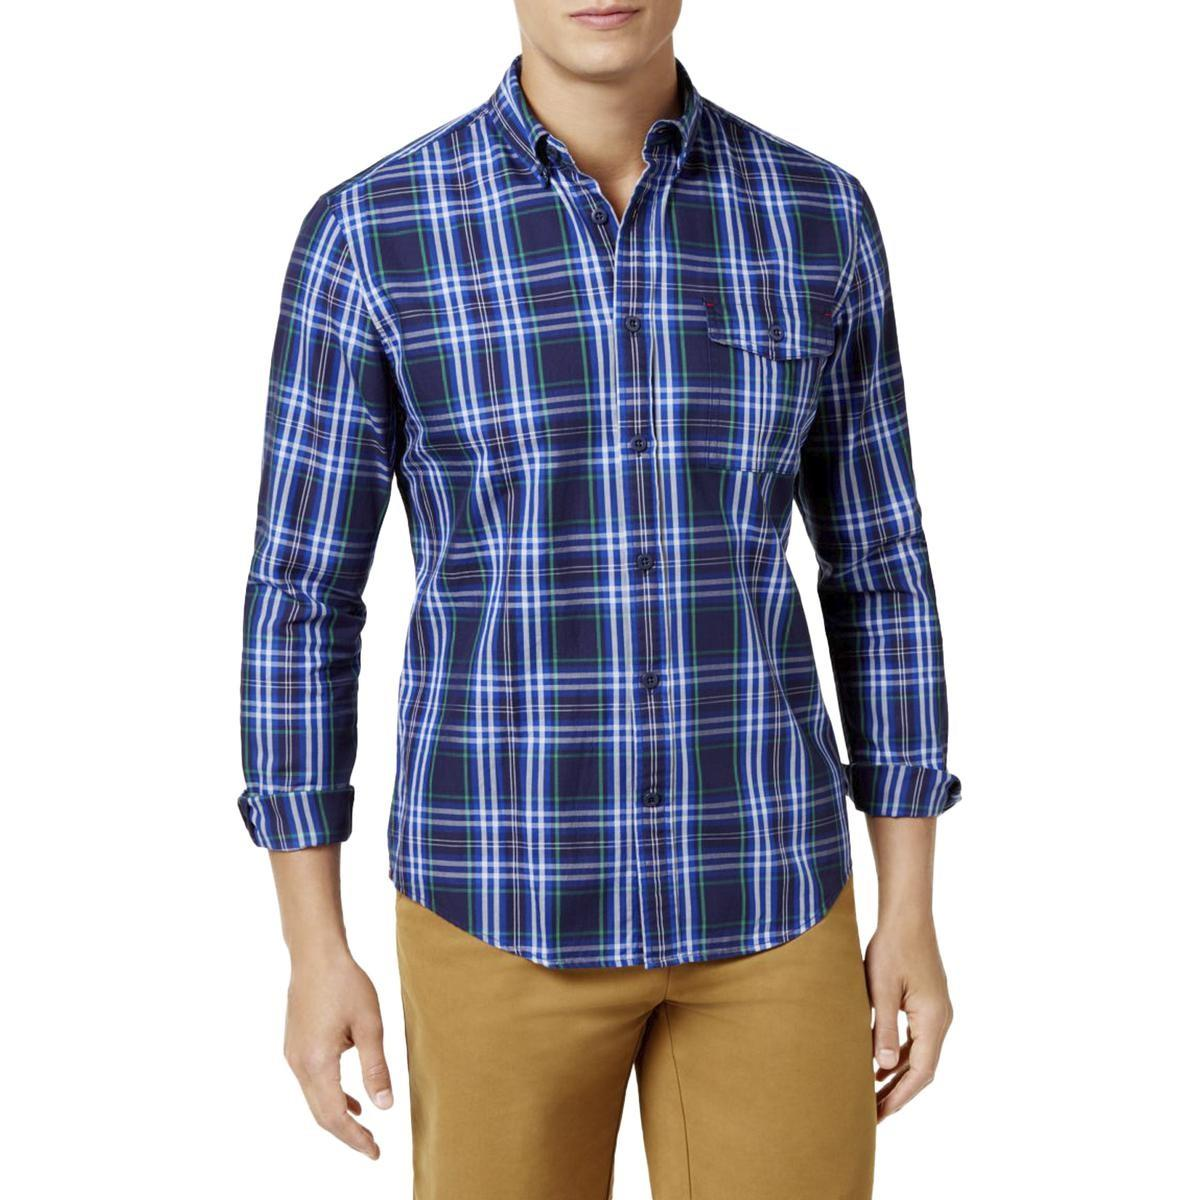 c100999e Lyst - Tommy Hilfiger Plaid Custom Fit Button-down Shirt in Blue for Men